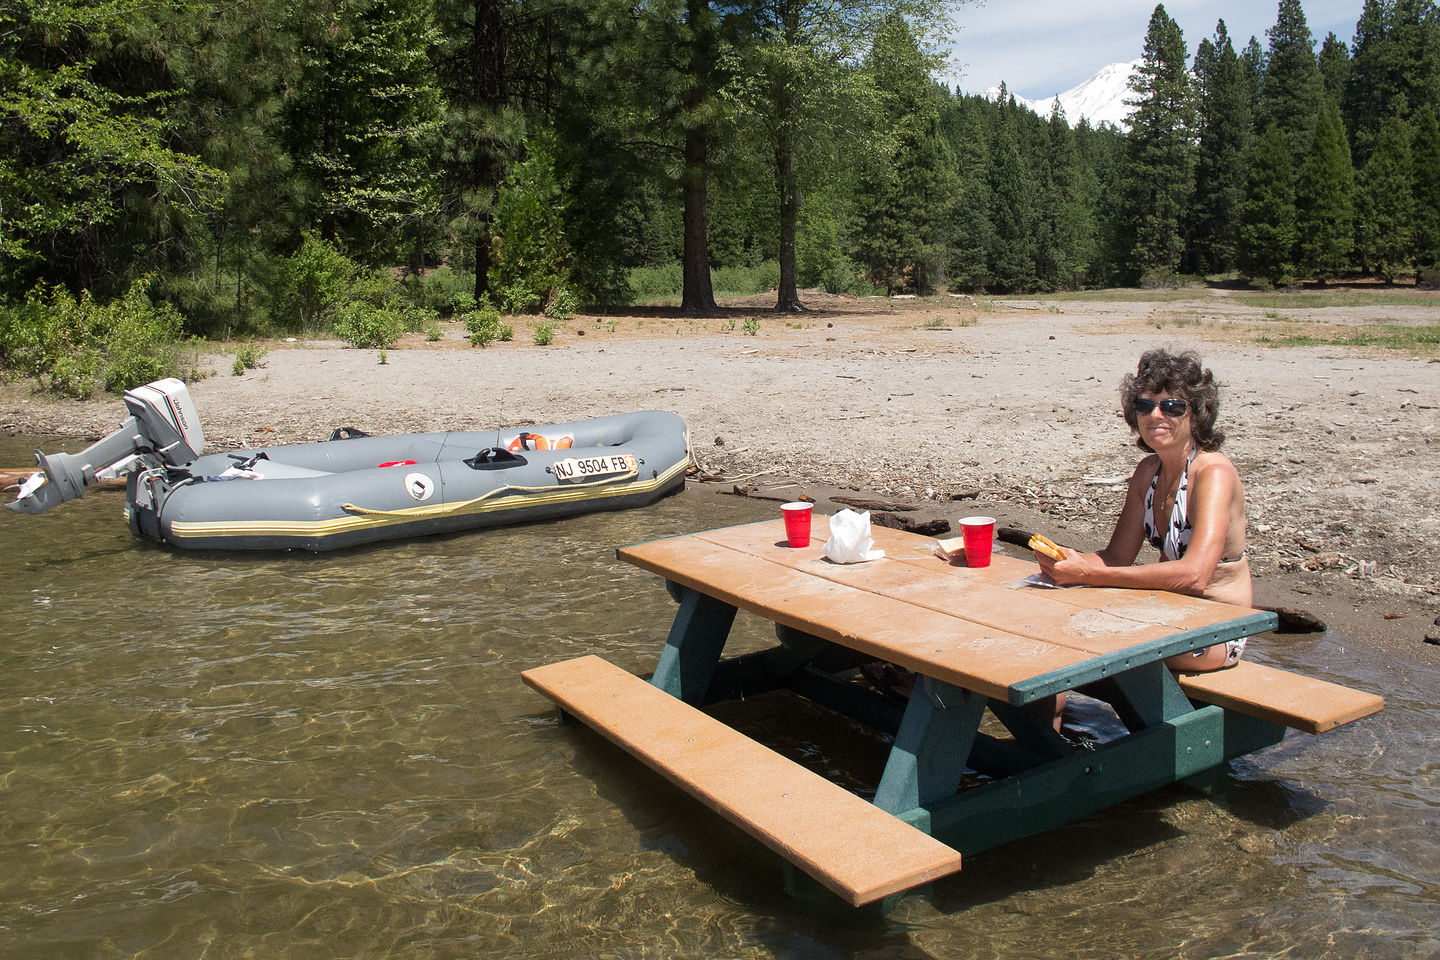 Lolo lunching on submerged Picnic Table